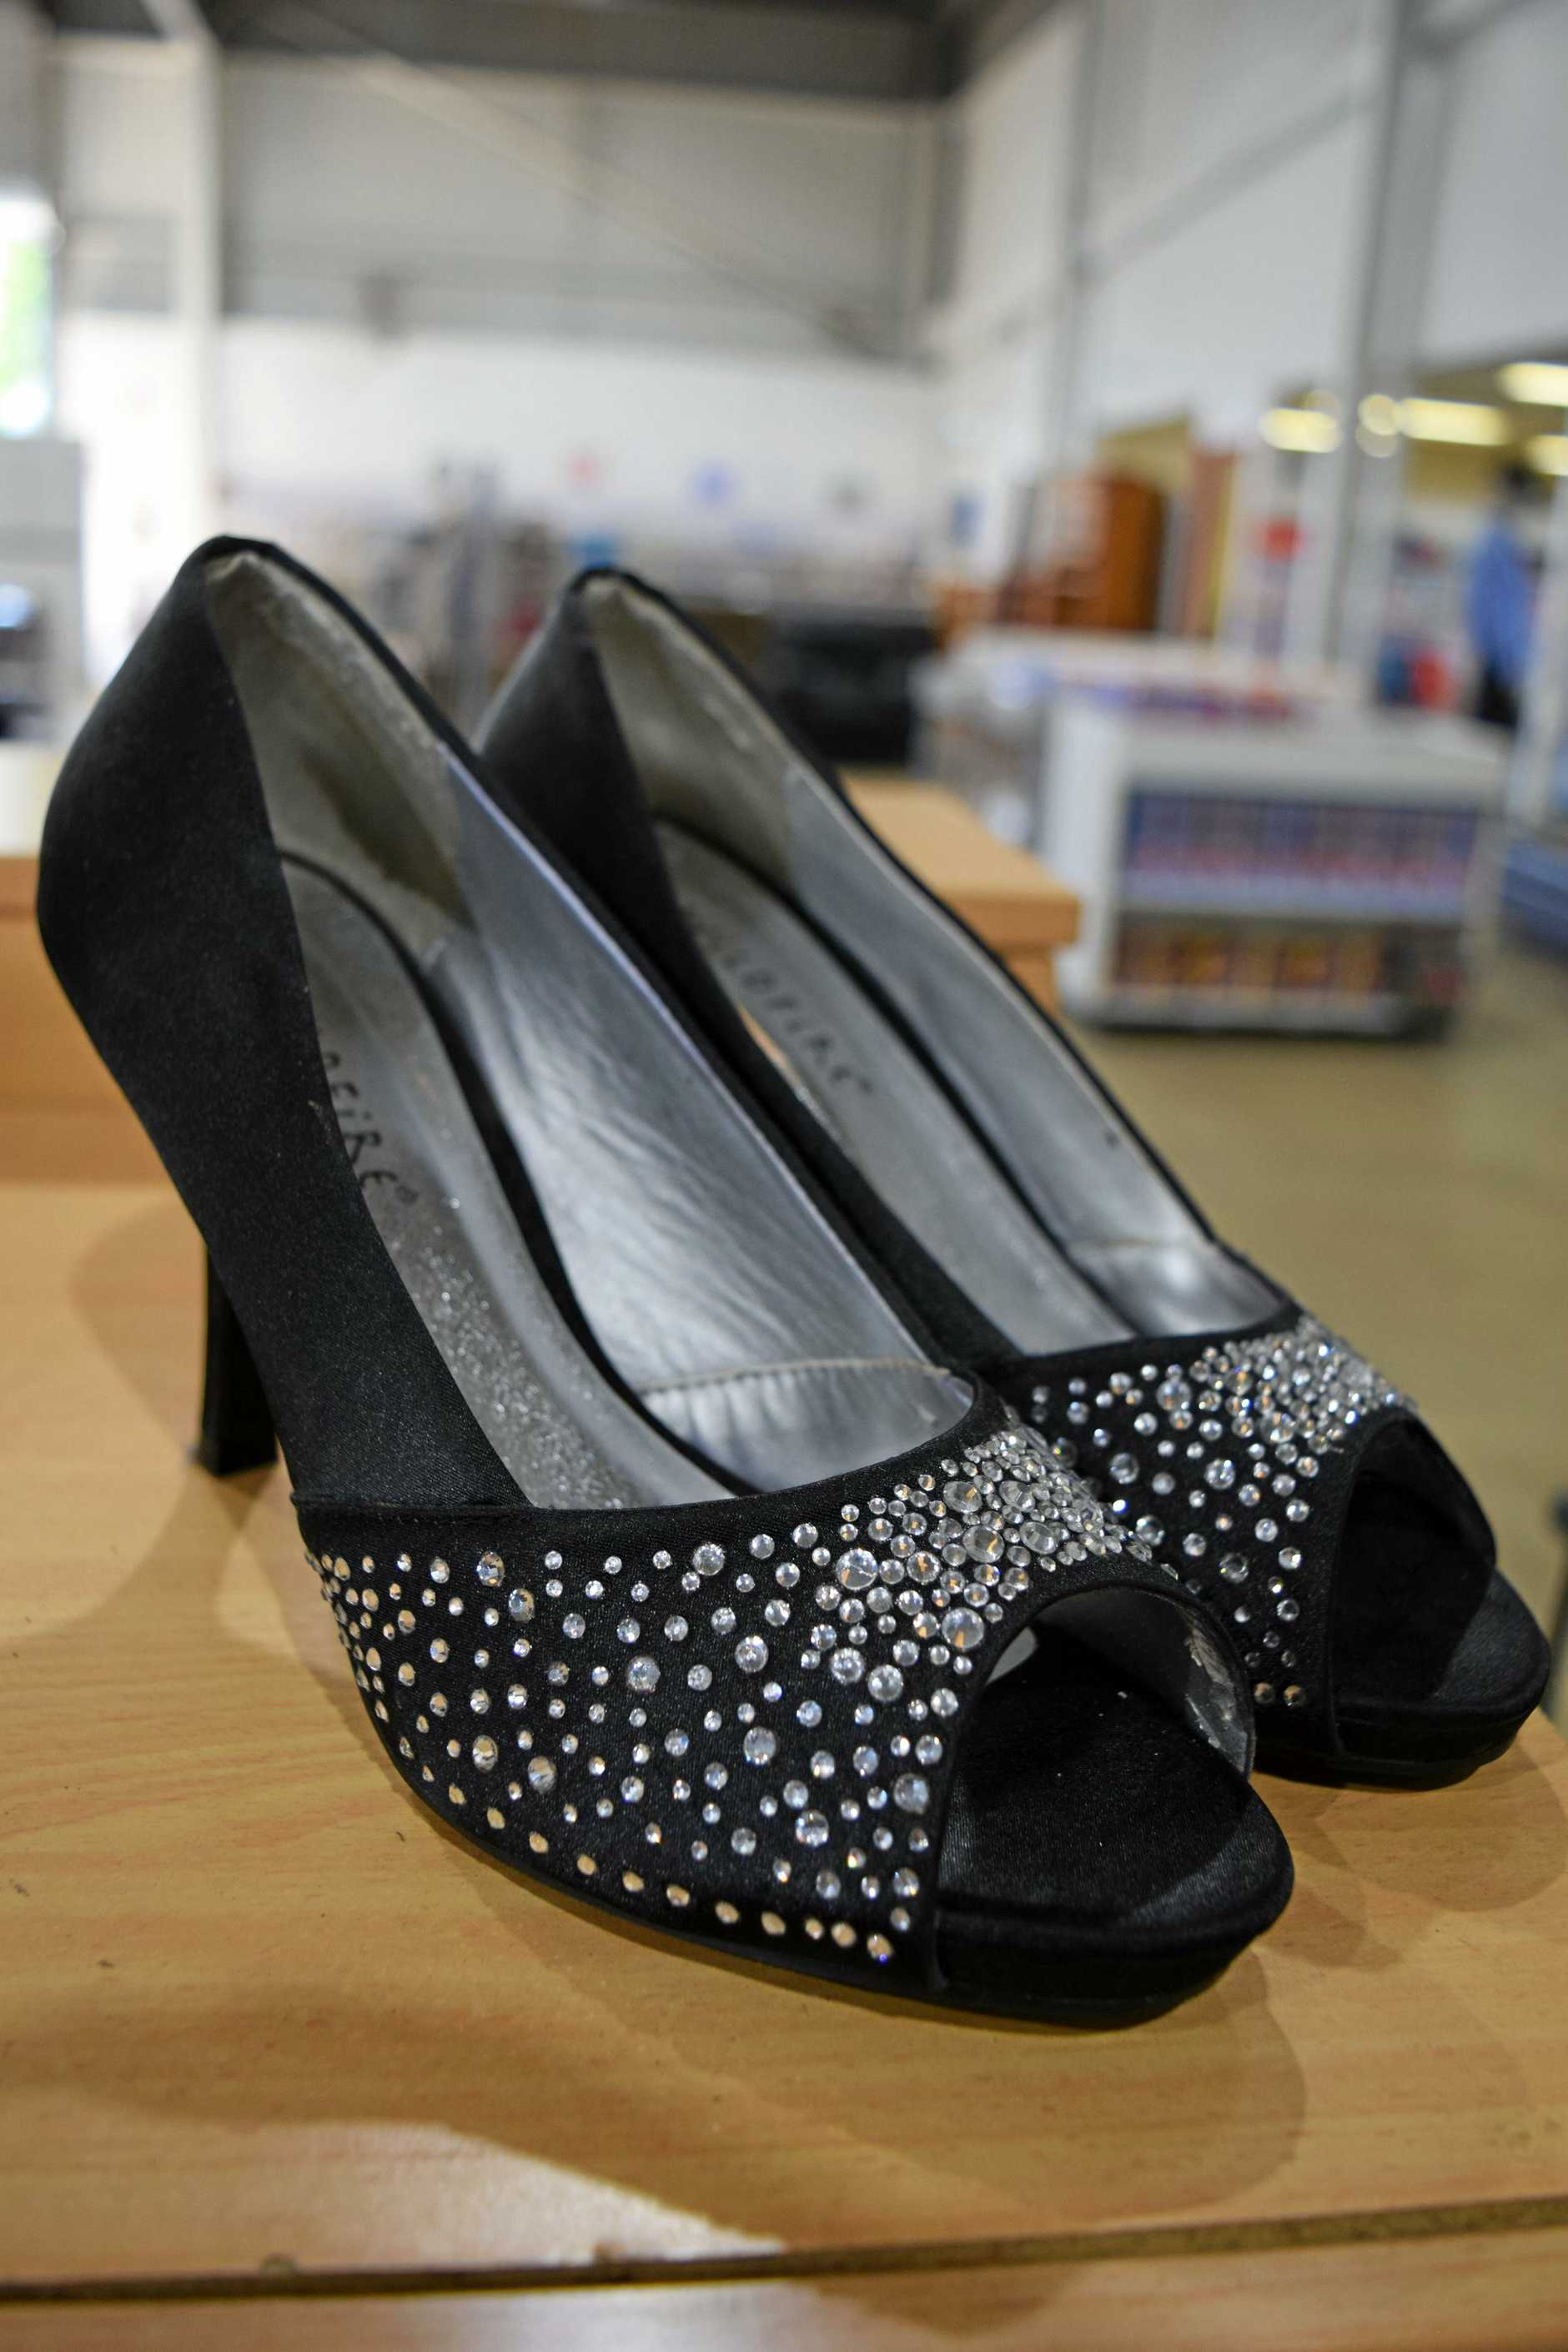 These shoes, currently marked at $3, will be reduced even further at the Salvation Army Family Store's sale on the weekend.